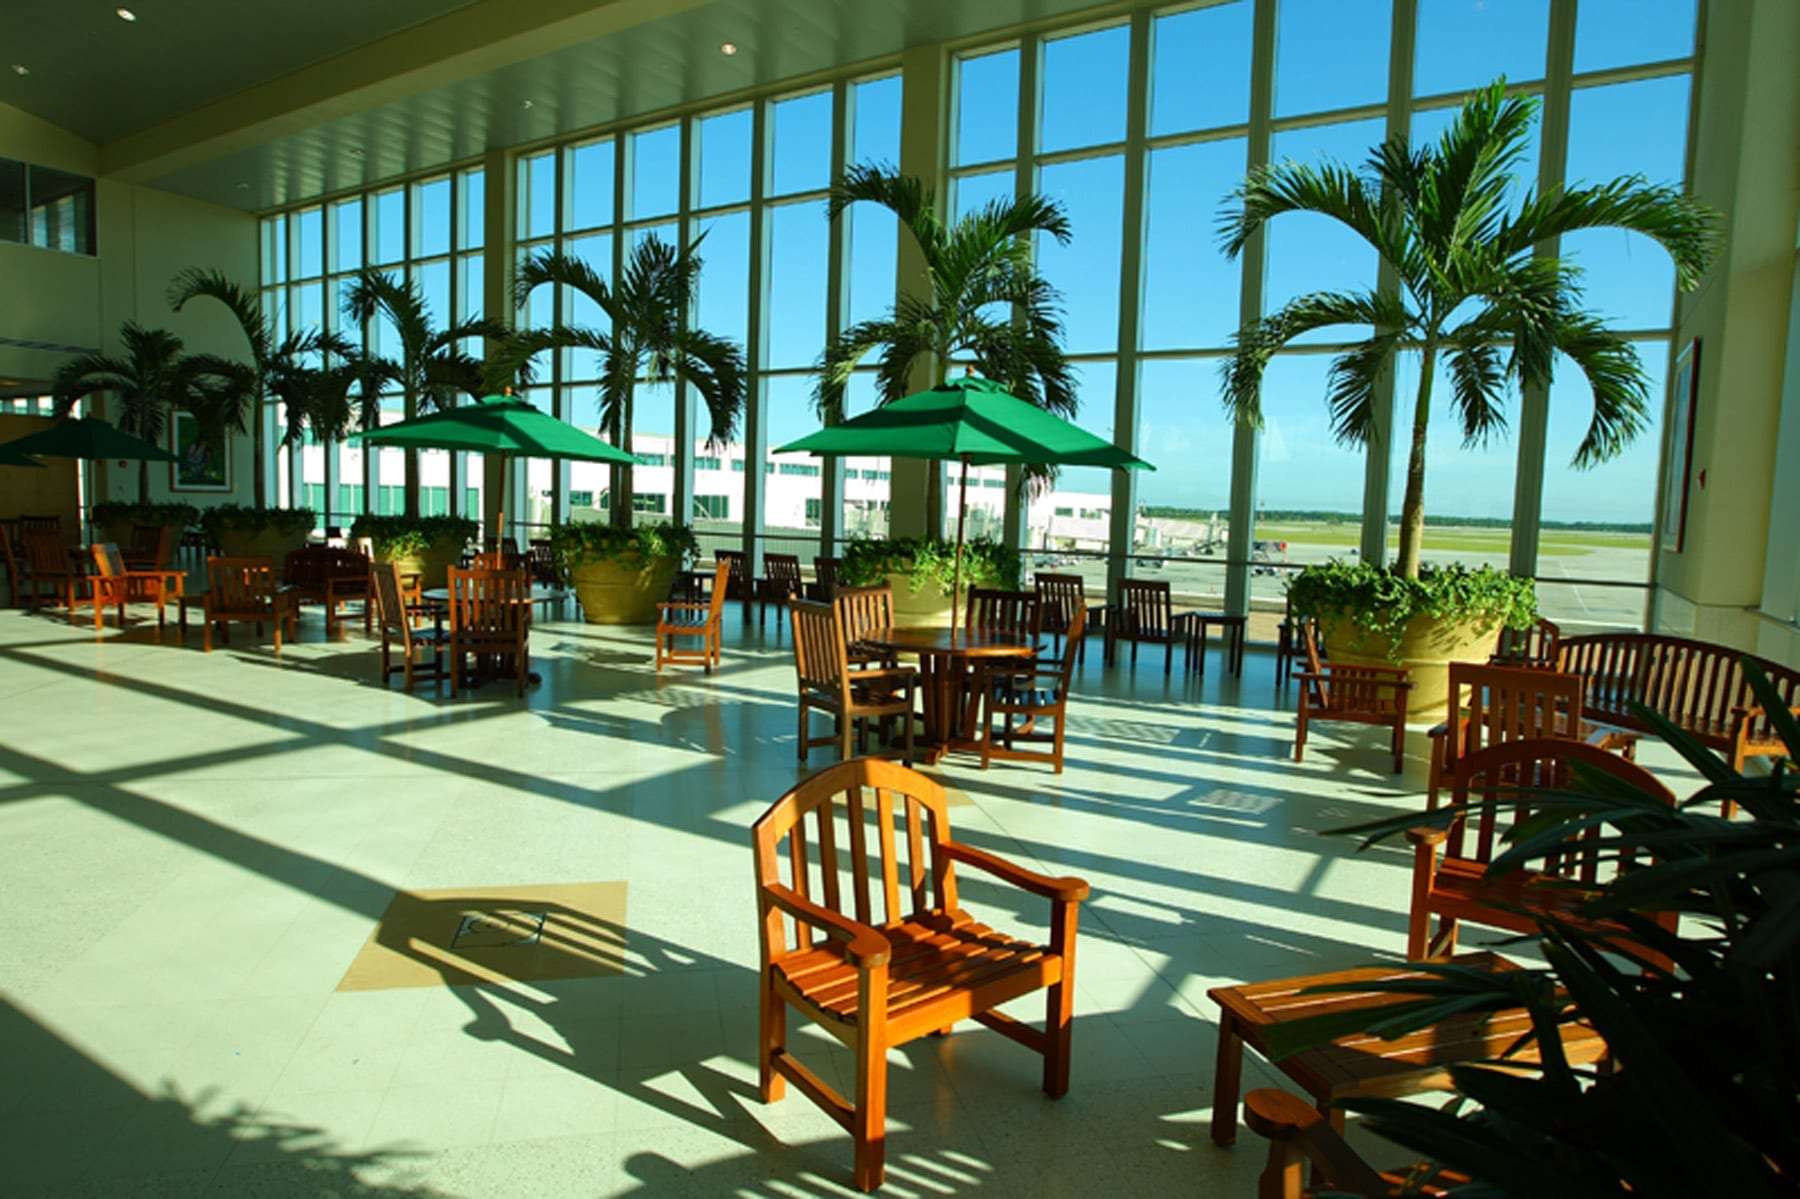 southwest florida international airport atrium